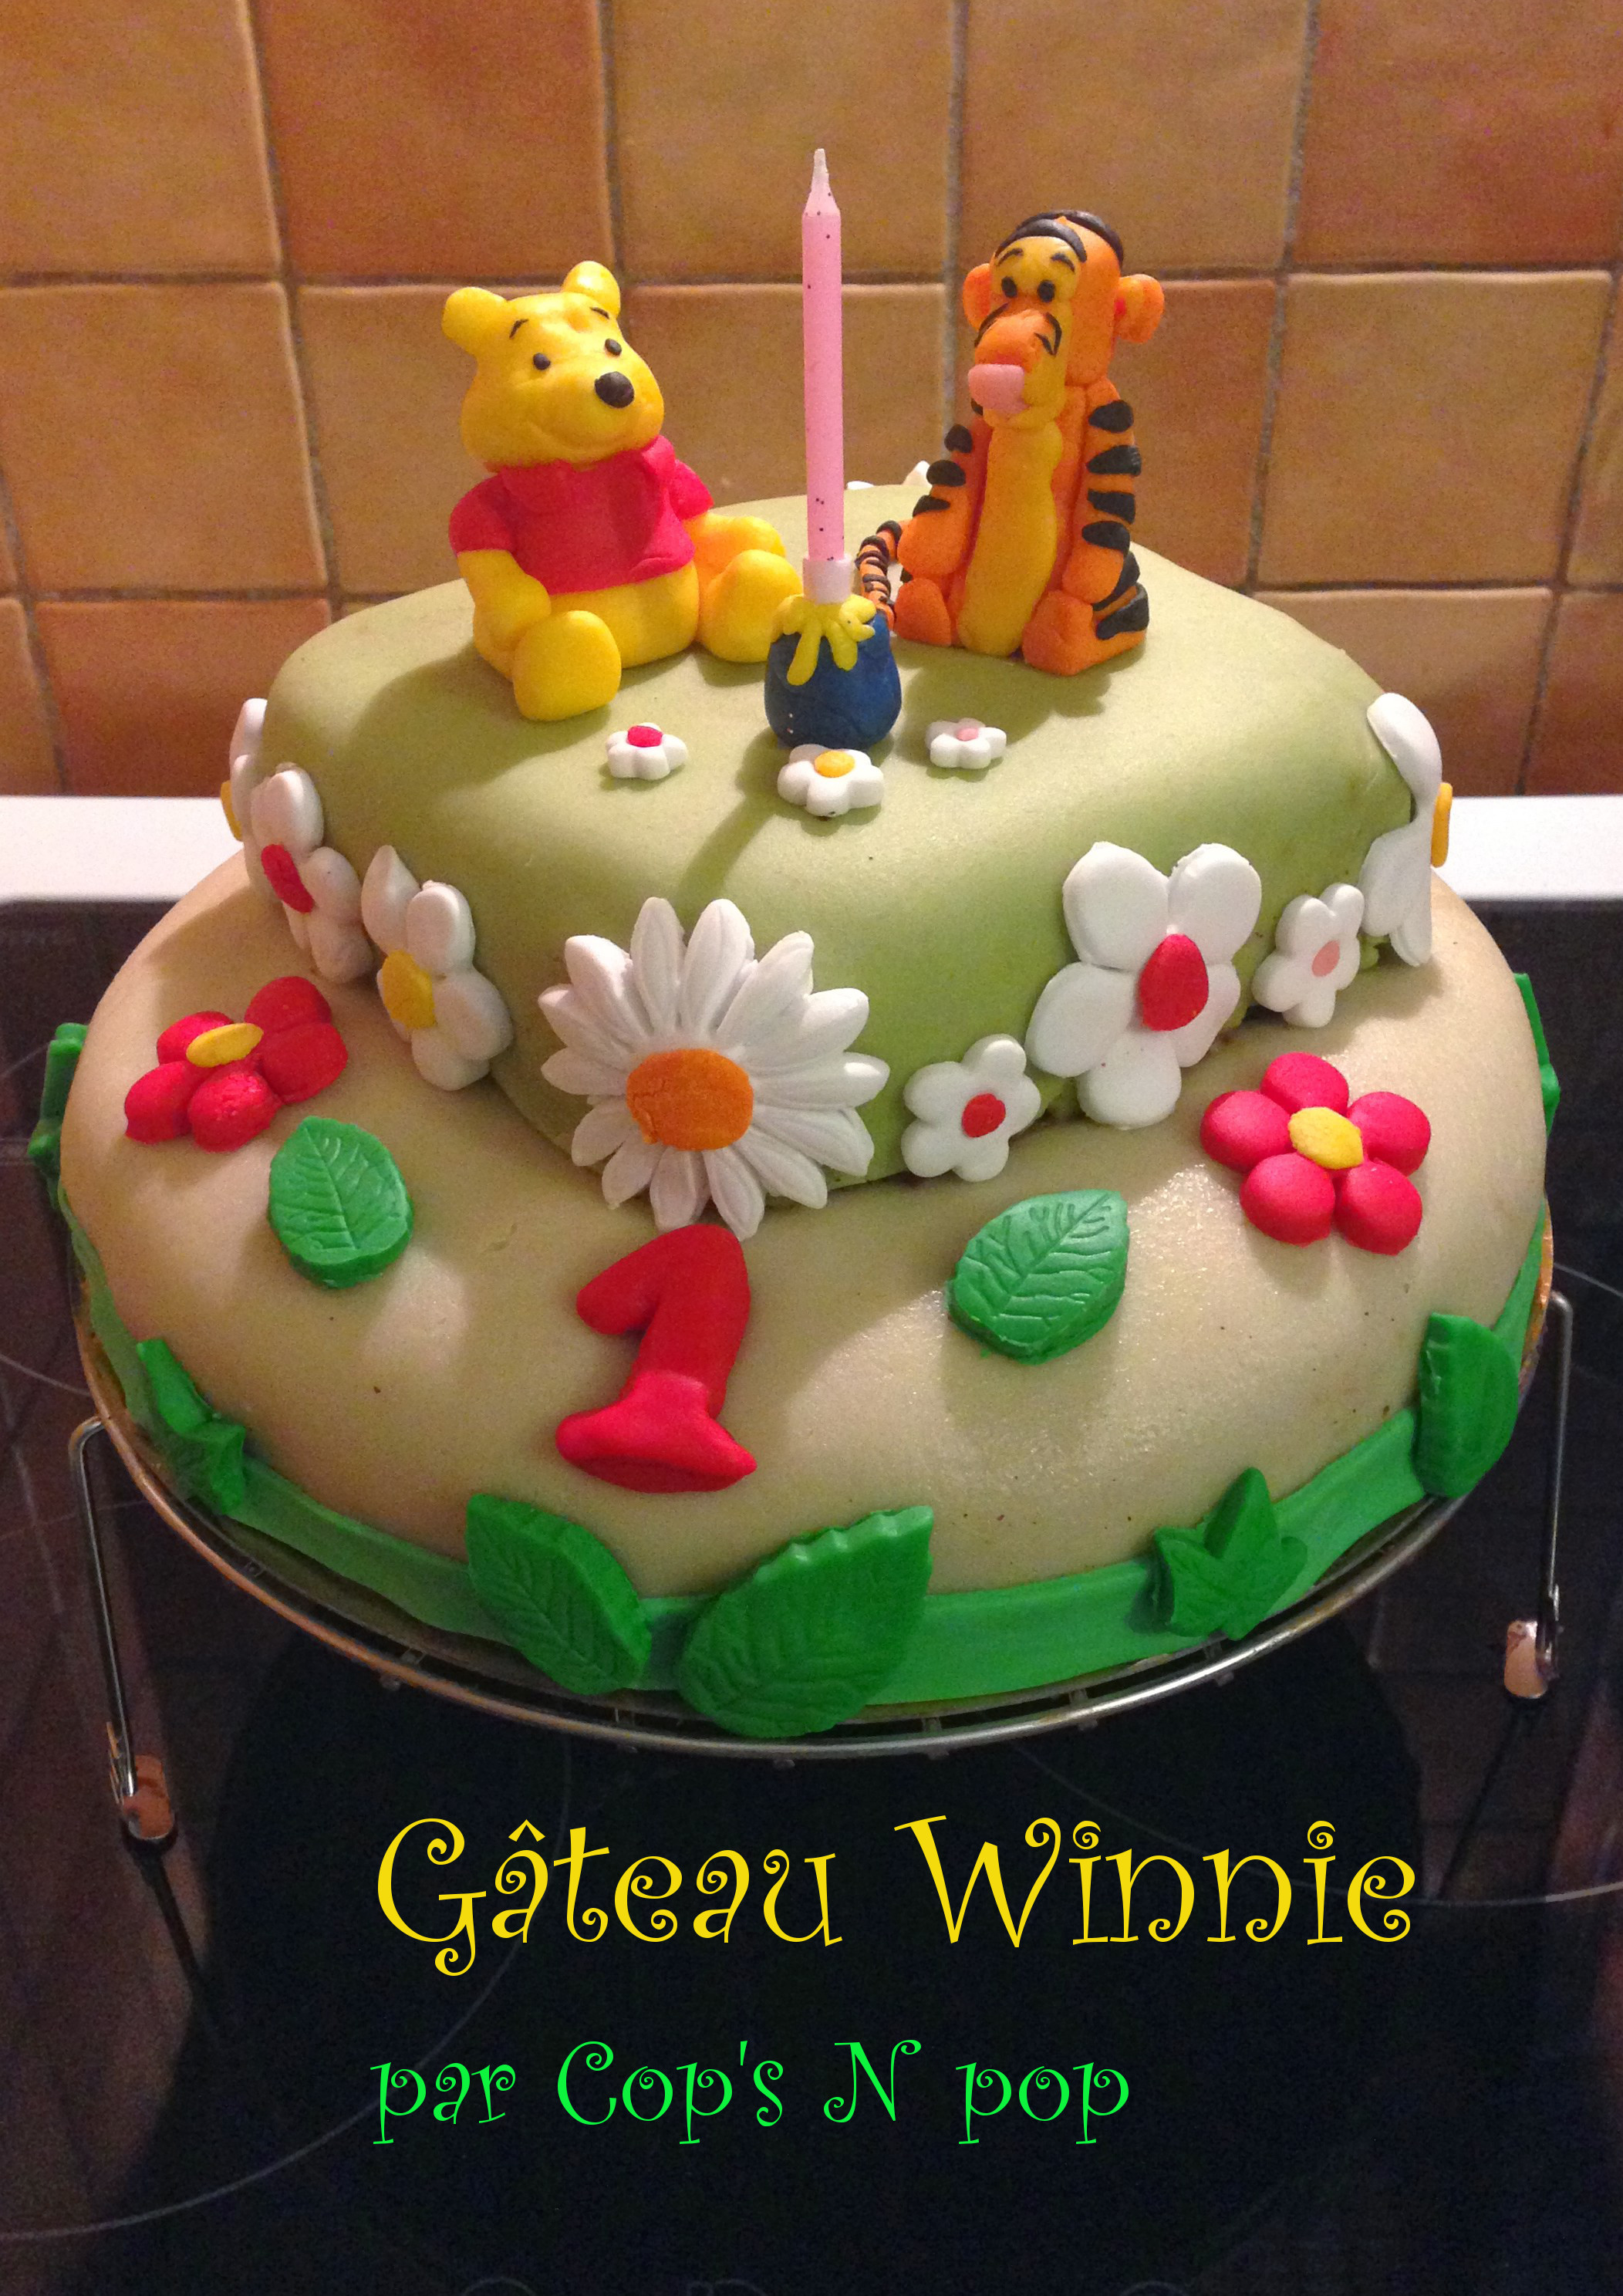 Decoration gateau winnie pate a sucre for Decoration gateau pate a sucre